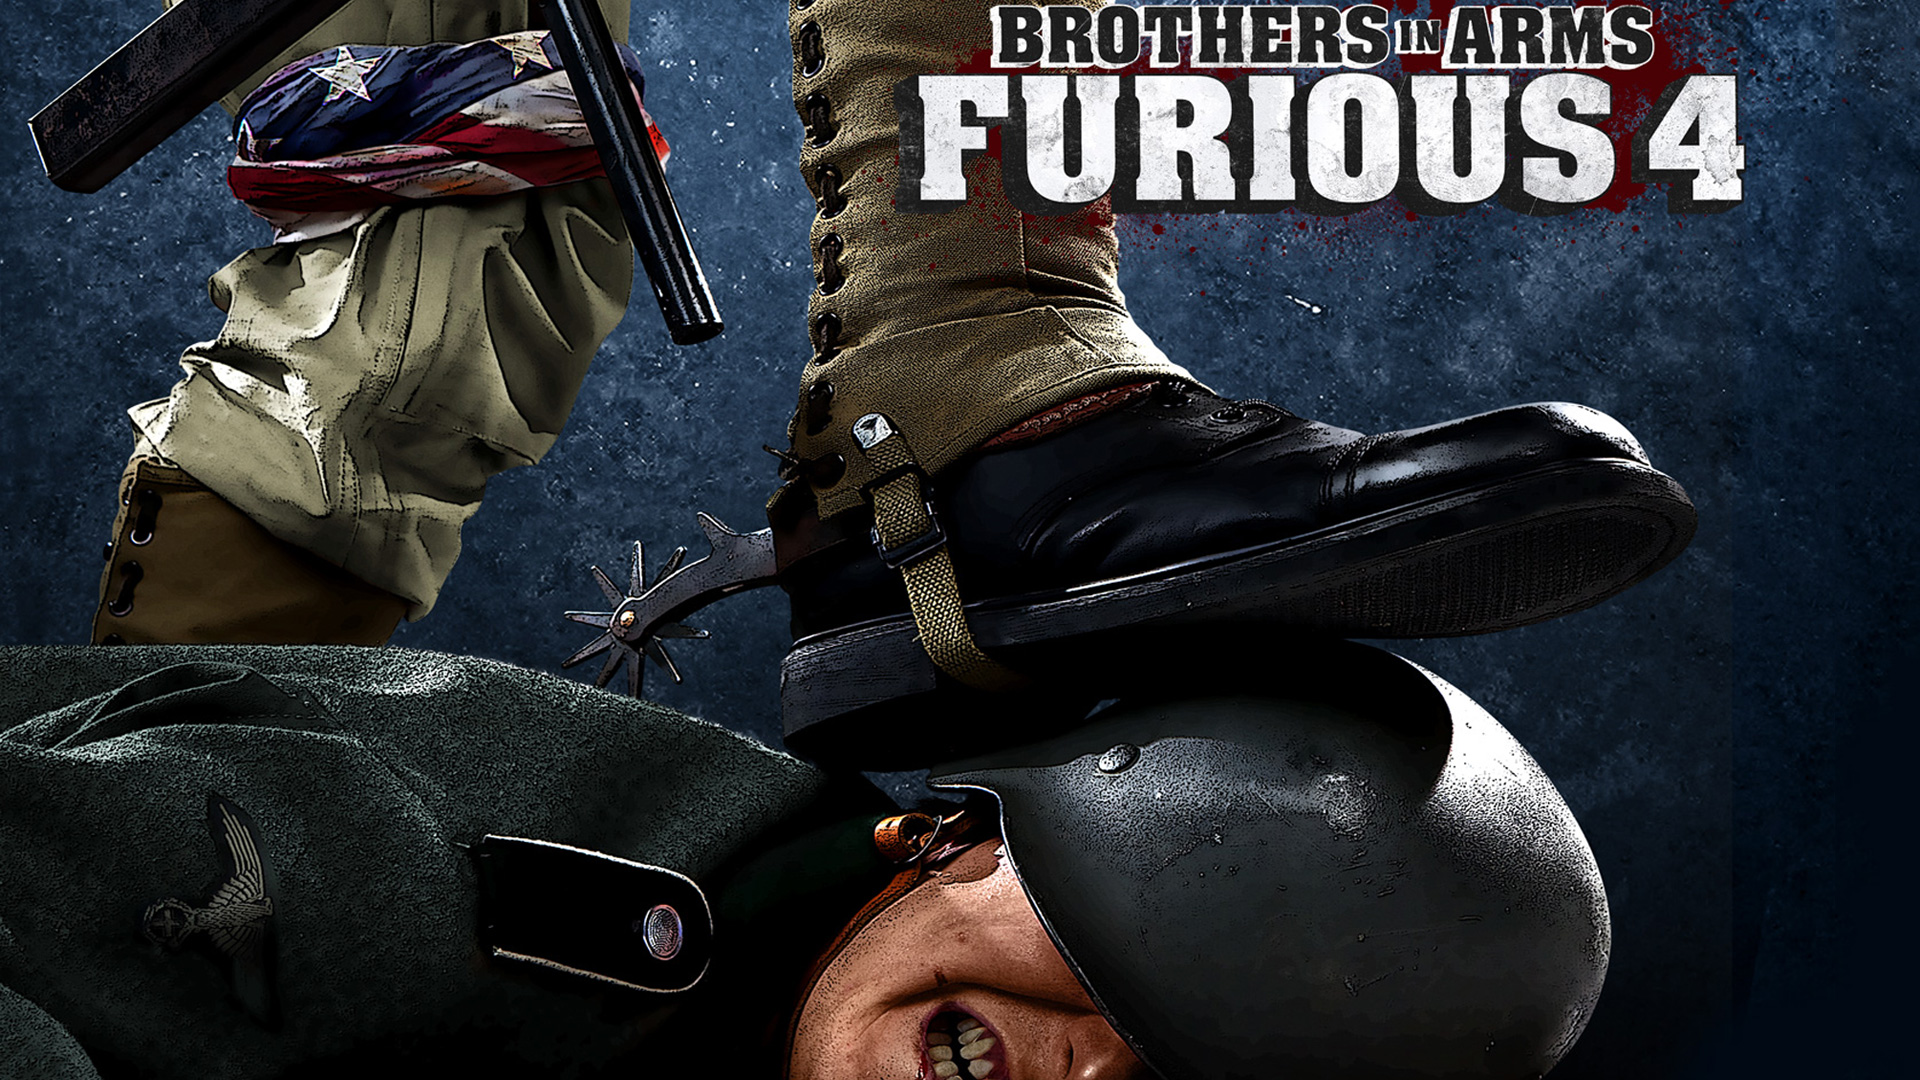 Brothers in Arms: Furious 4 Wallpaper in 1920x1080